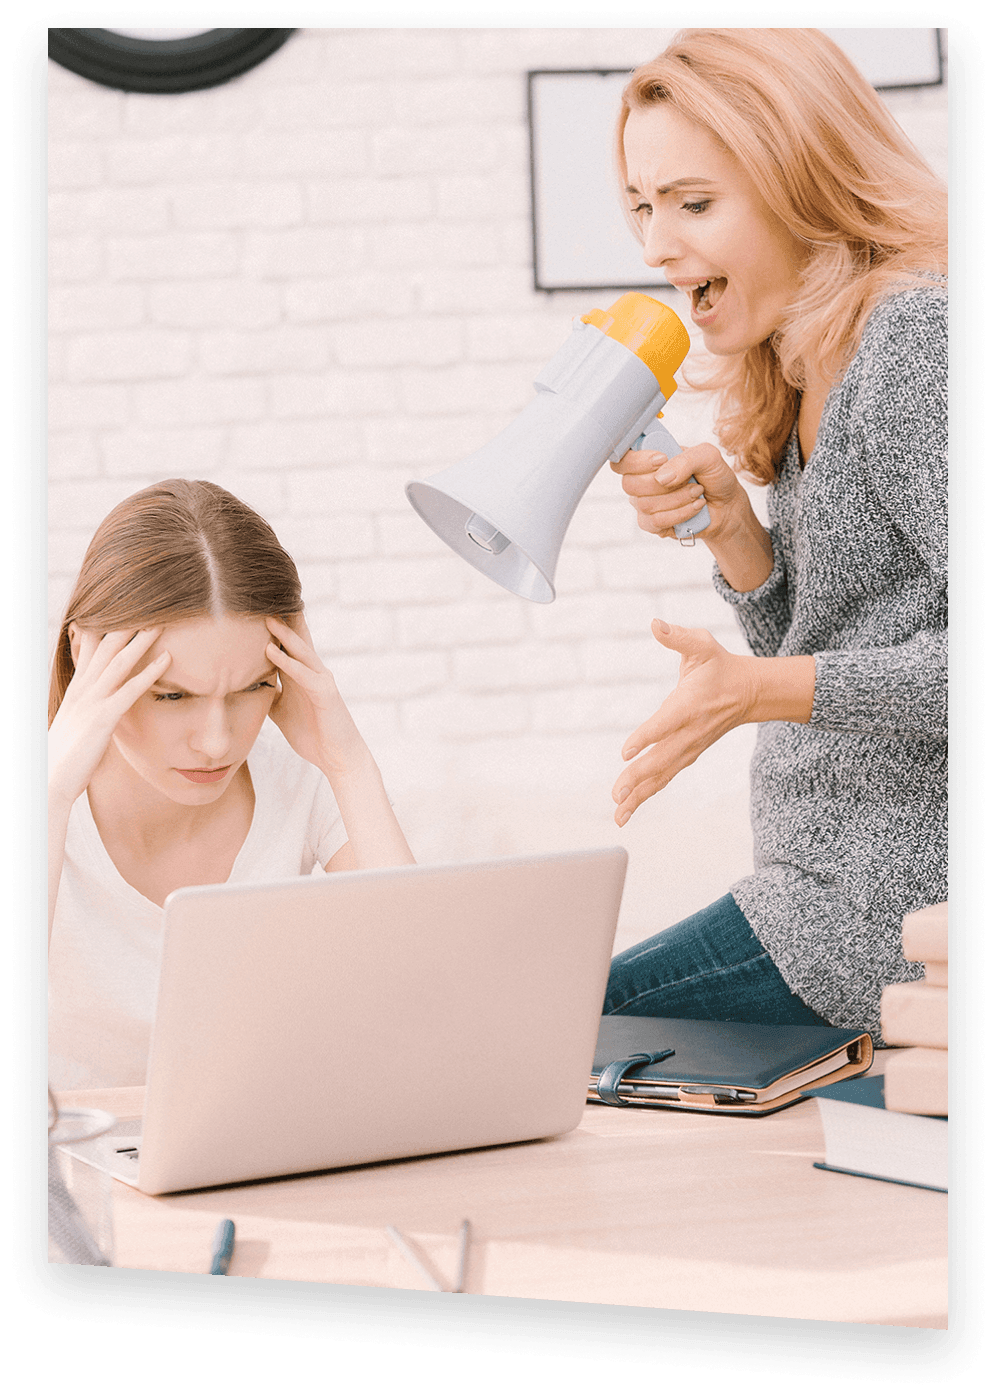 Angry mother screaming with a megaphone at distraught daughter troubled with misunderstanding of her big amount of coursework